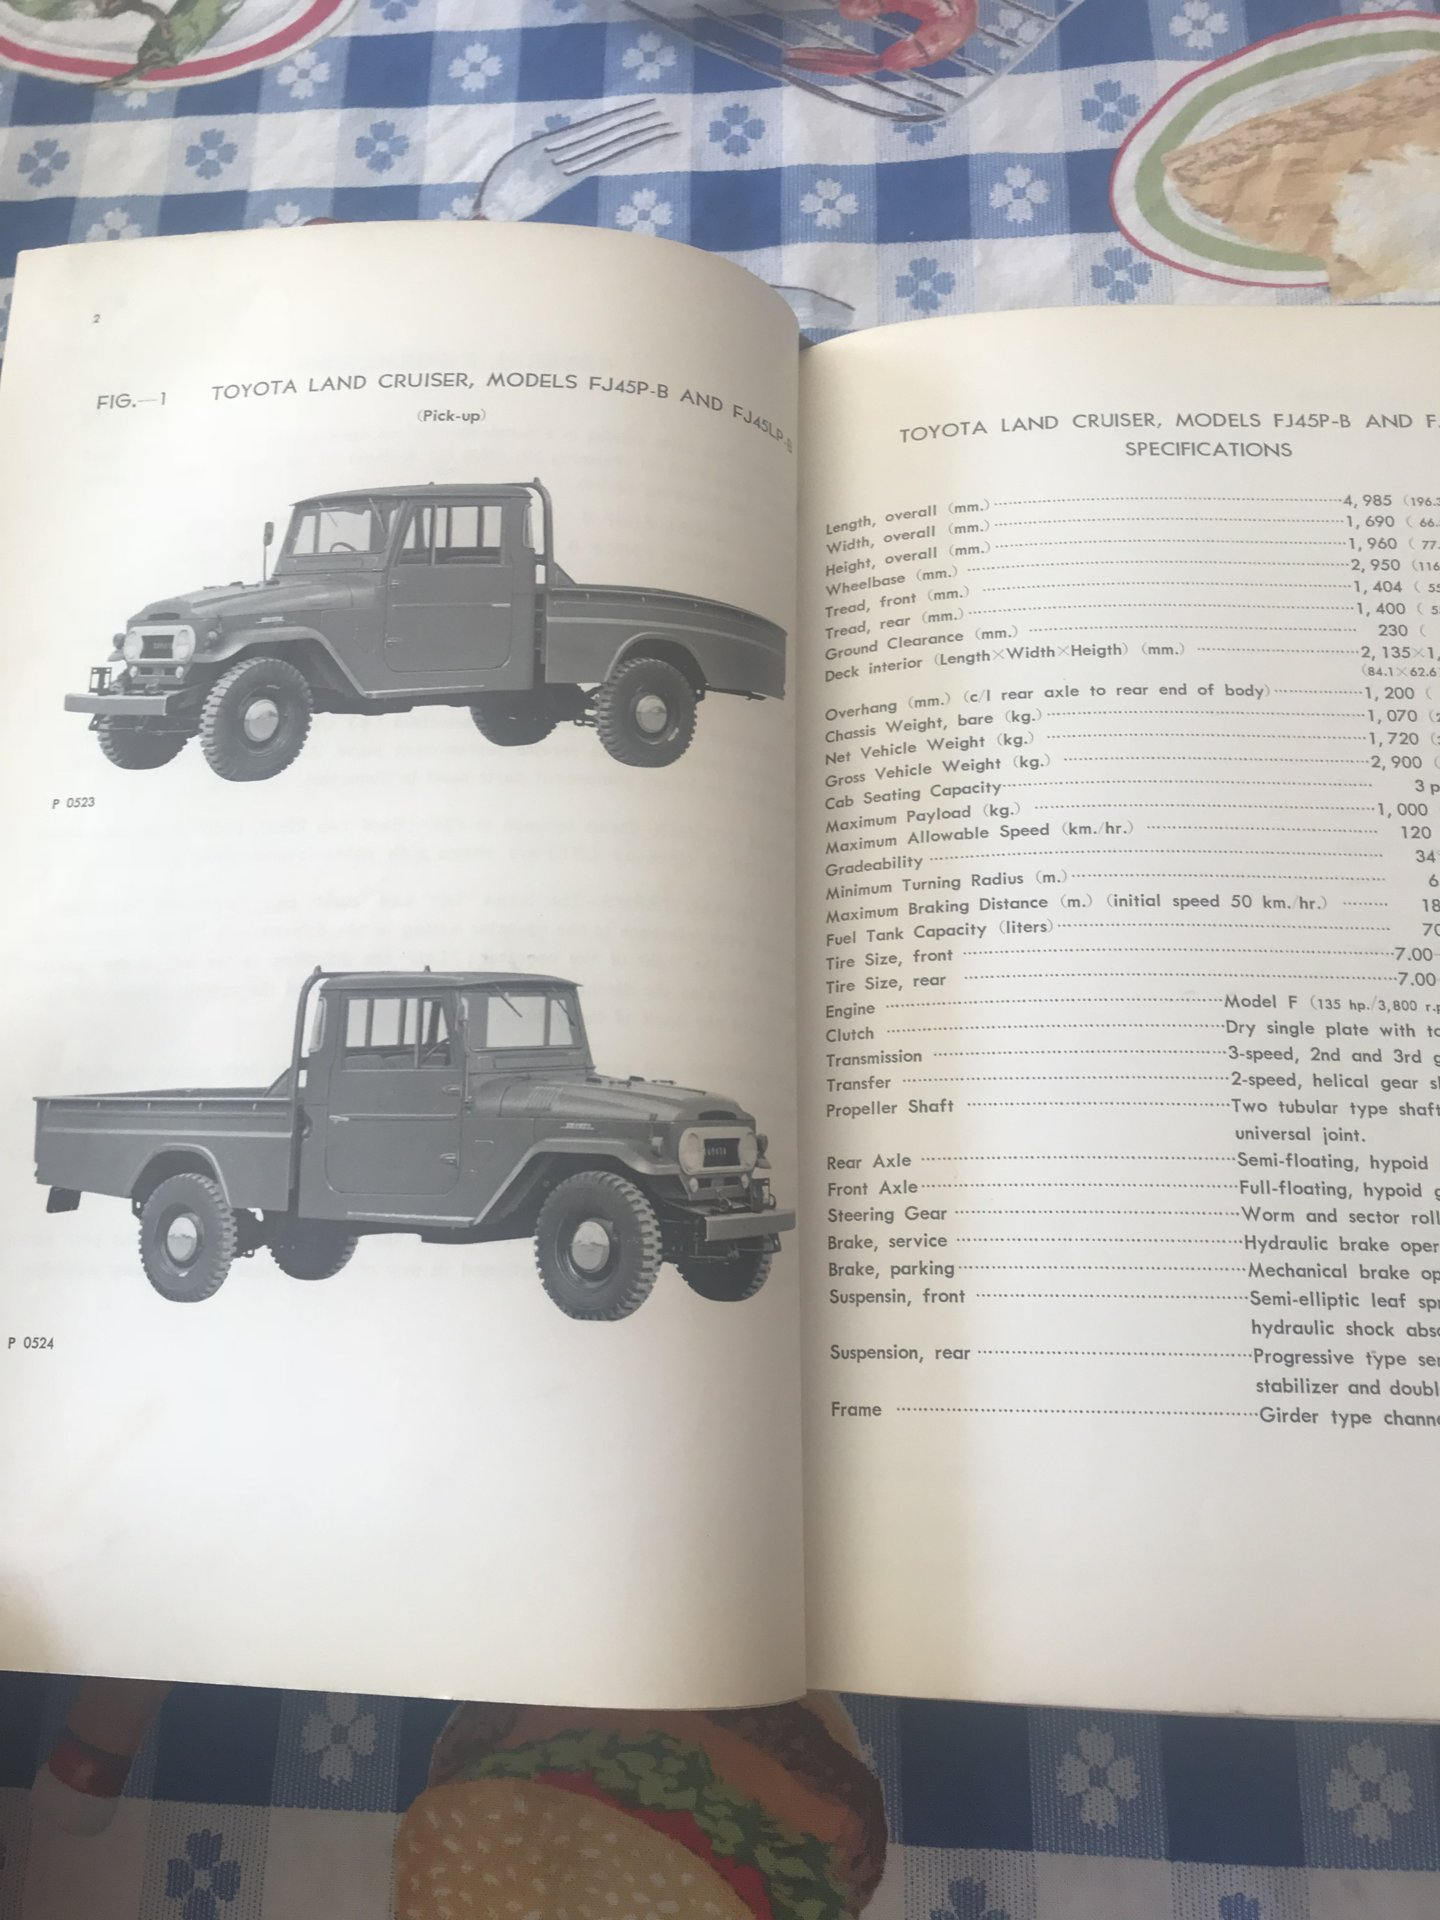 SOLD - Factory 1965 landcruiser parts manual, Fj40, 45lpb